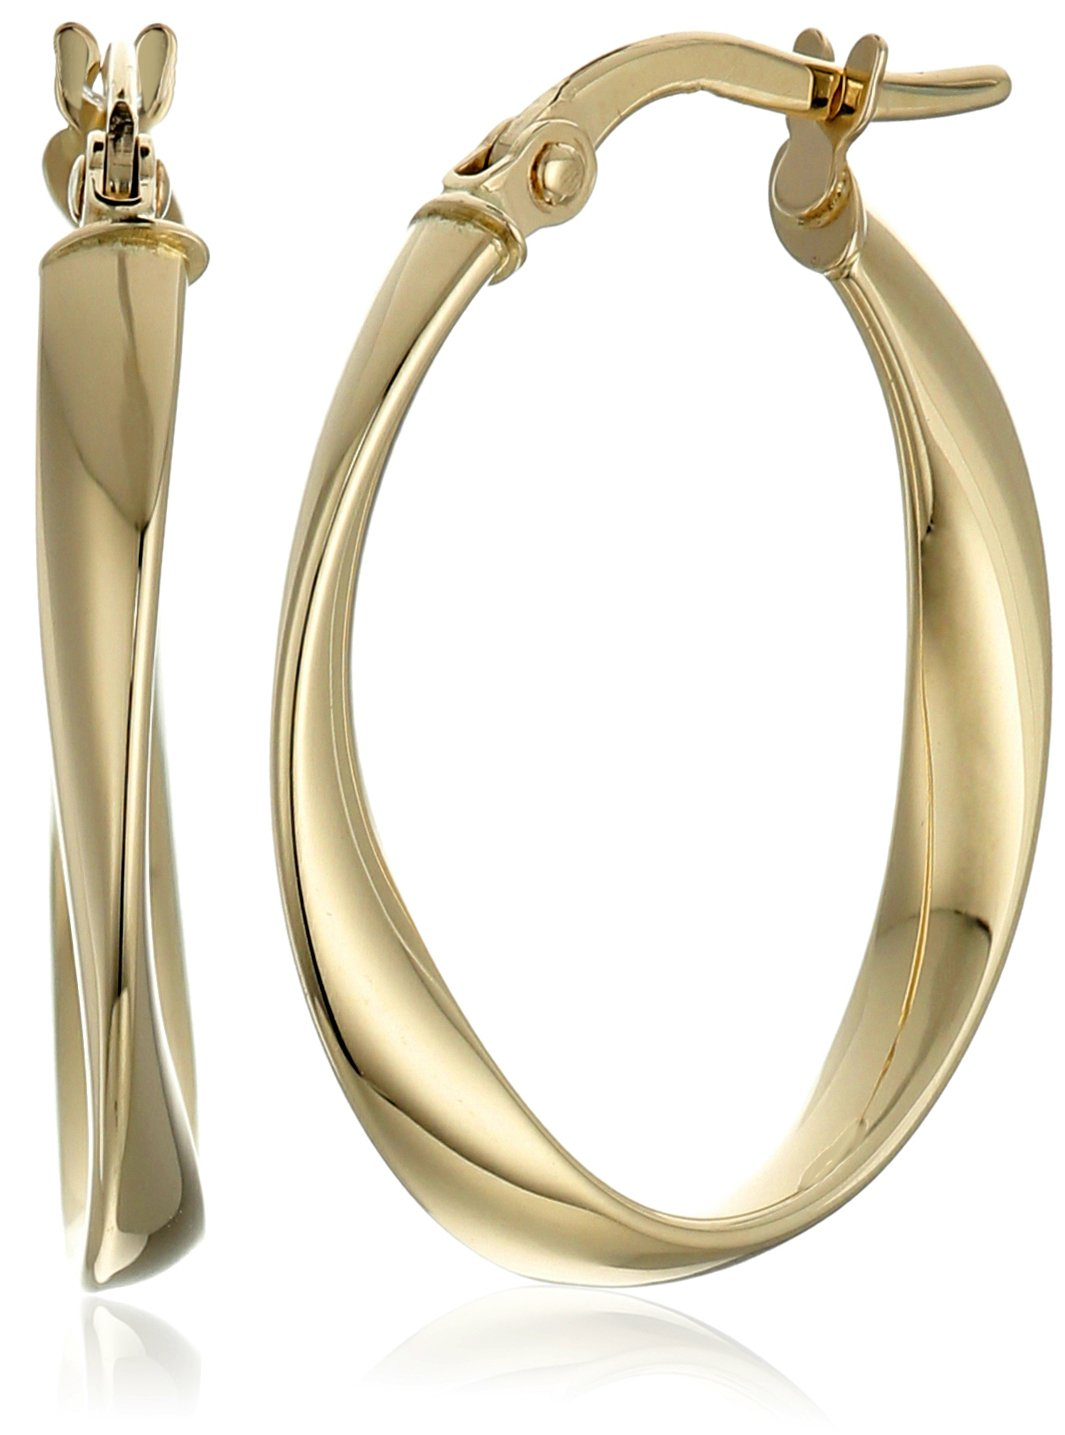 14k Yellow Gold Twisted Oval Hoop Earrings by Amazon Collection